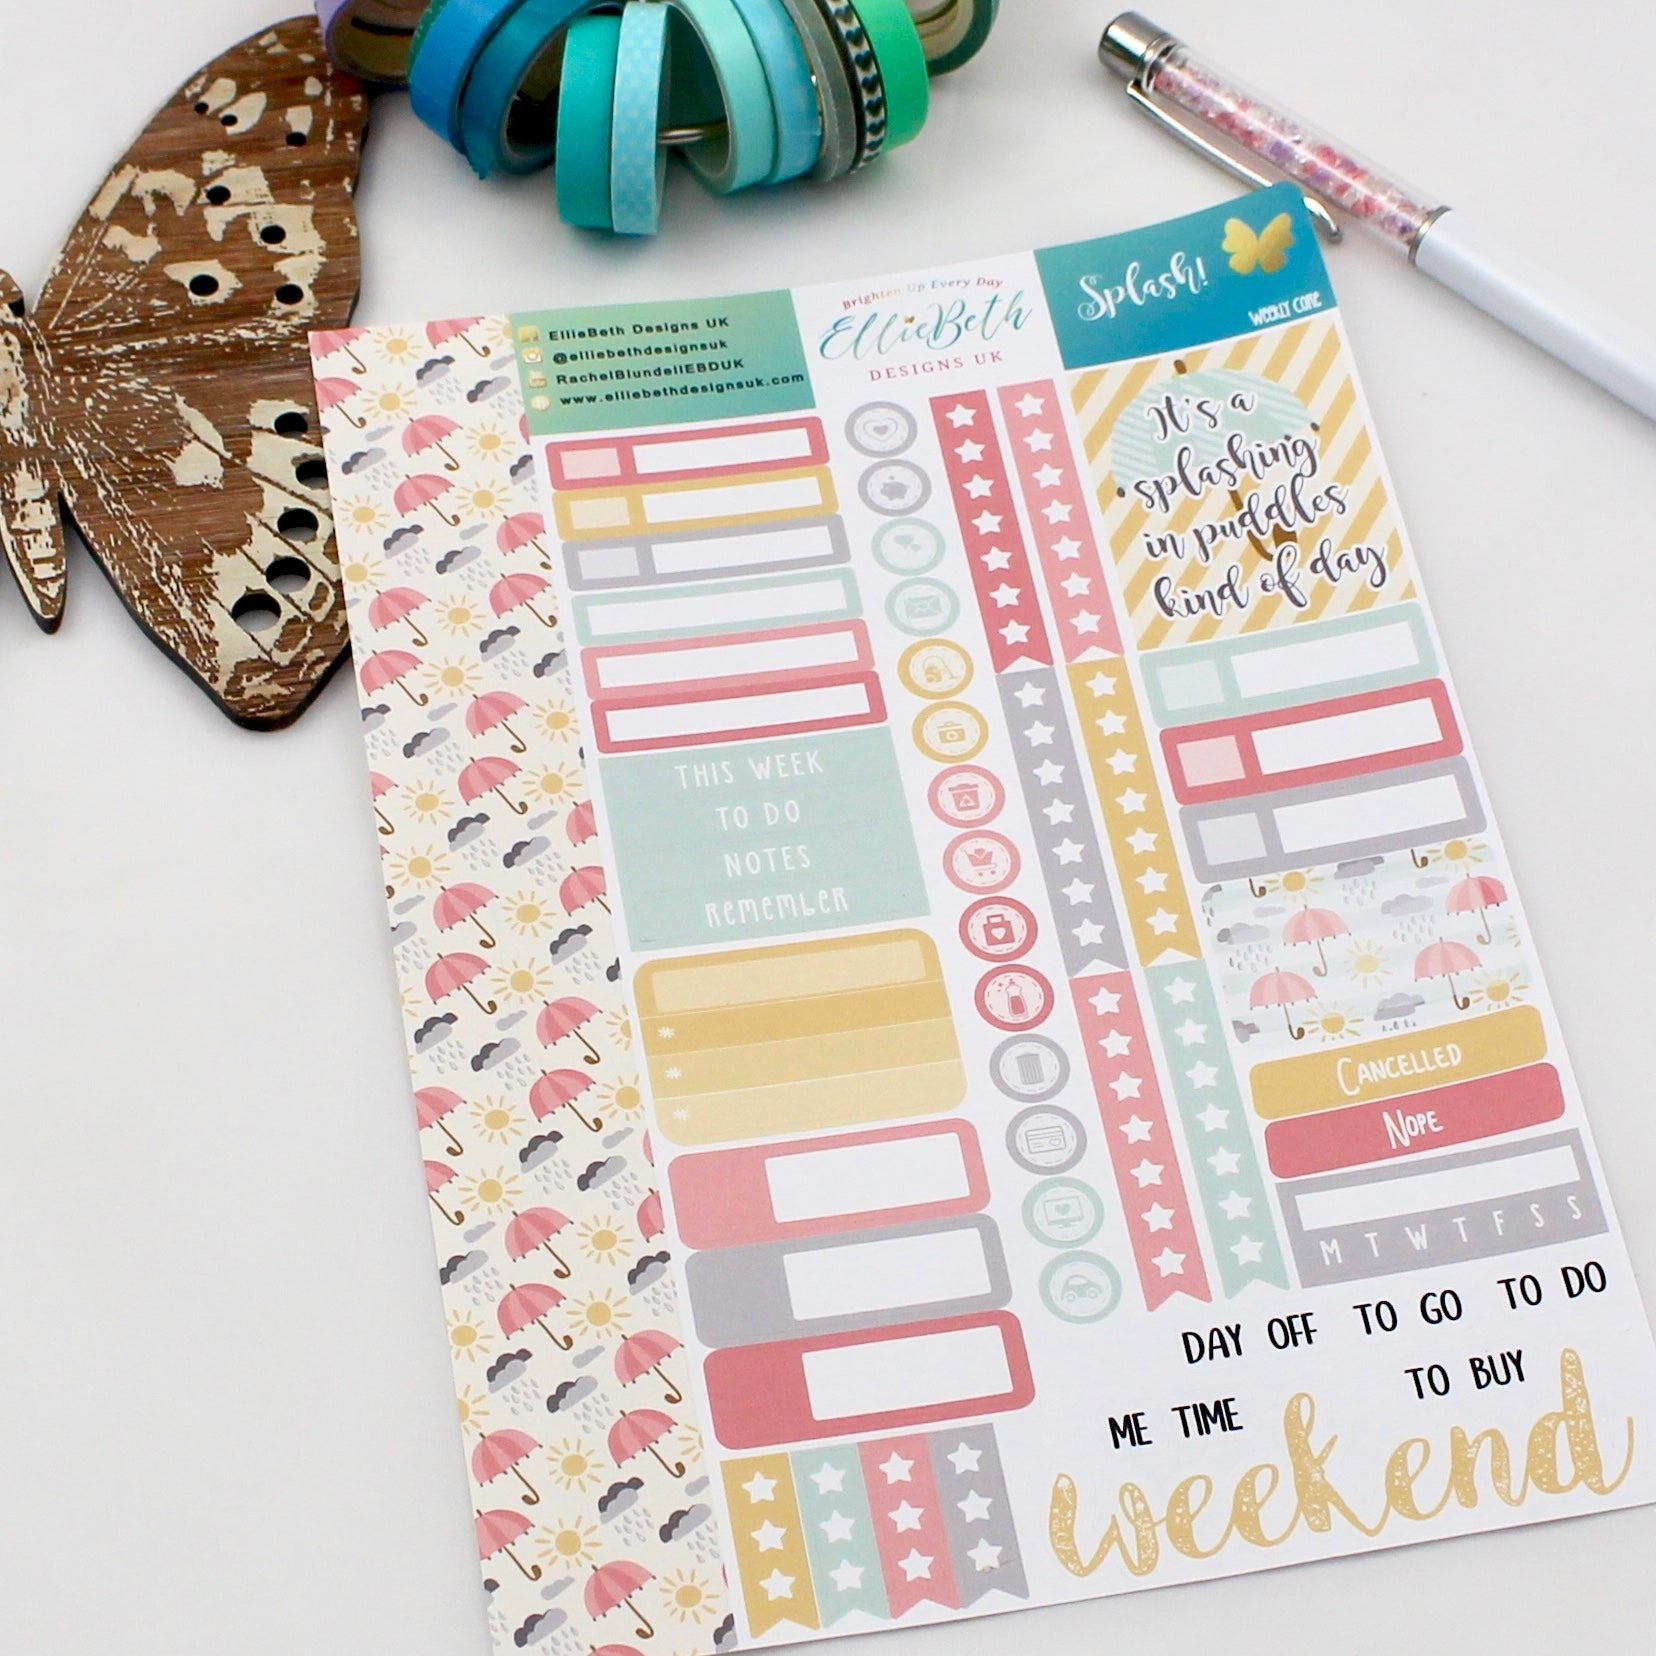 'Splash!' - Weekly Core Sheet - A5 binder ready planner stickers